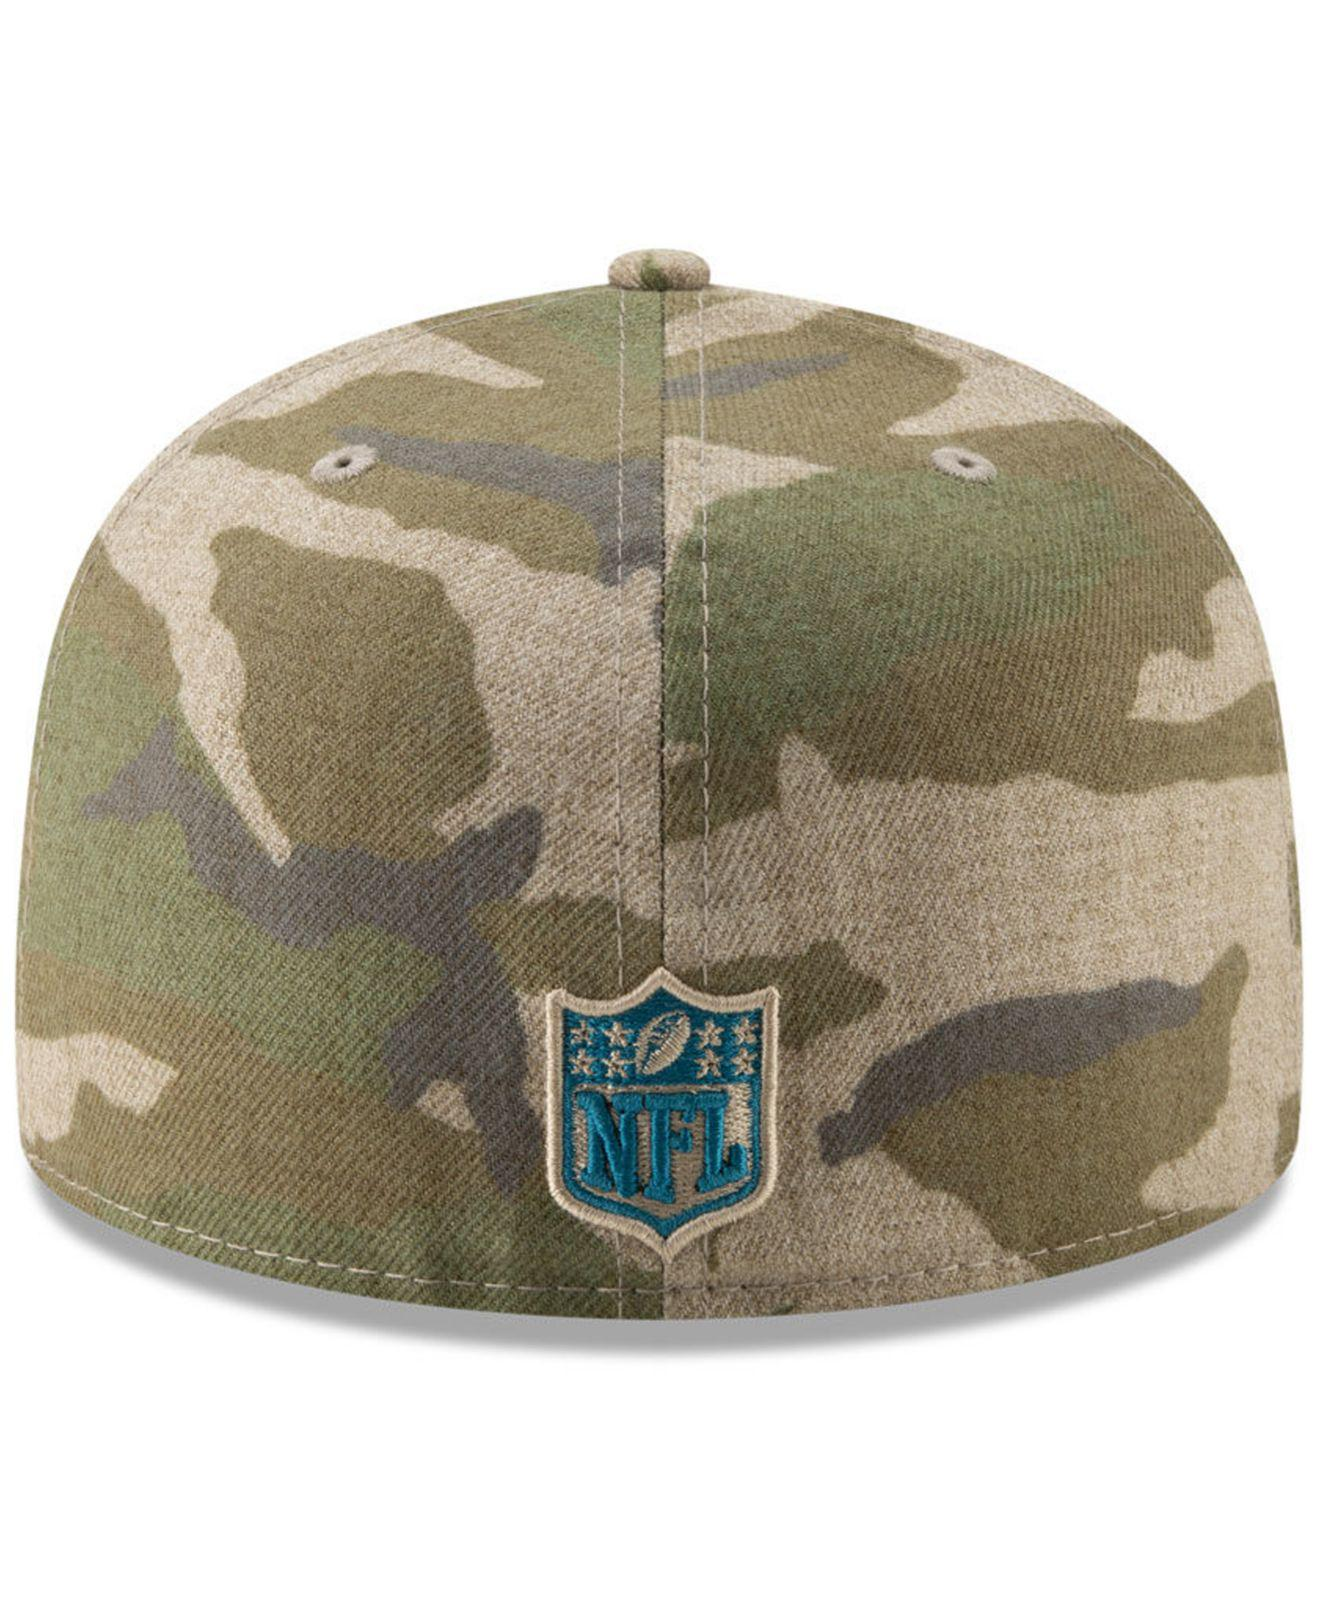 sale retailer bede6 0c6ef Lyst - KTZ Carolina Panthers Vintage Camo 59fifty Fitted Cap in Green for  Men